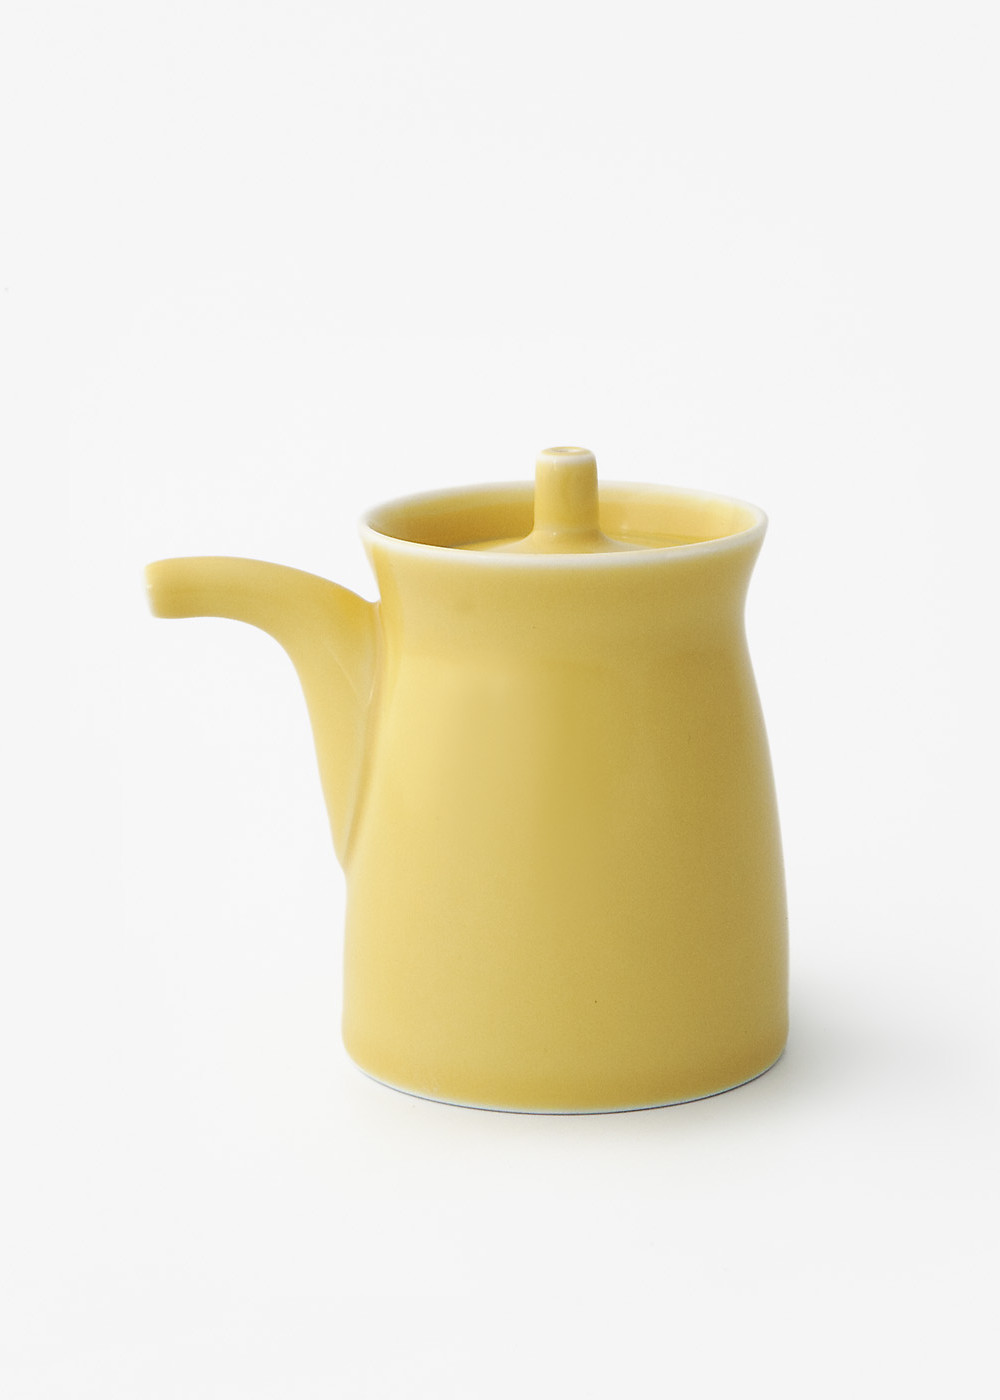 Hakusanporcelain-Gtype-Soy-Sauce-dispenser-Yellow1